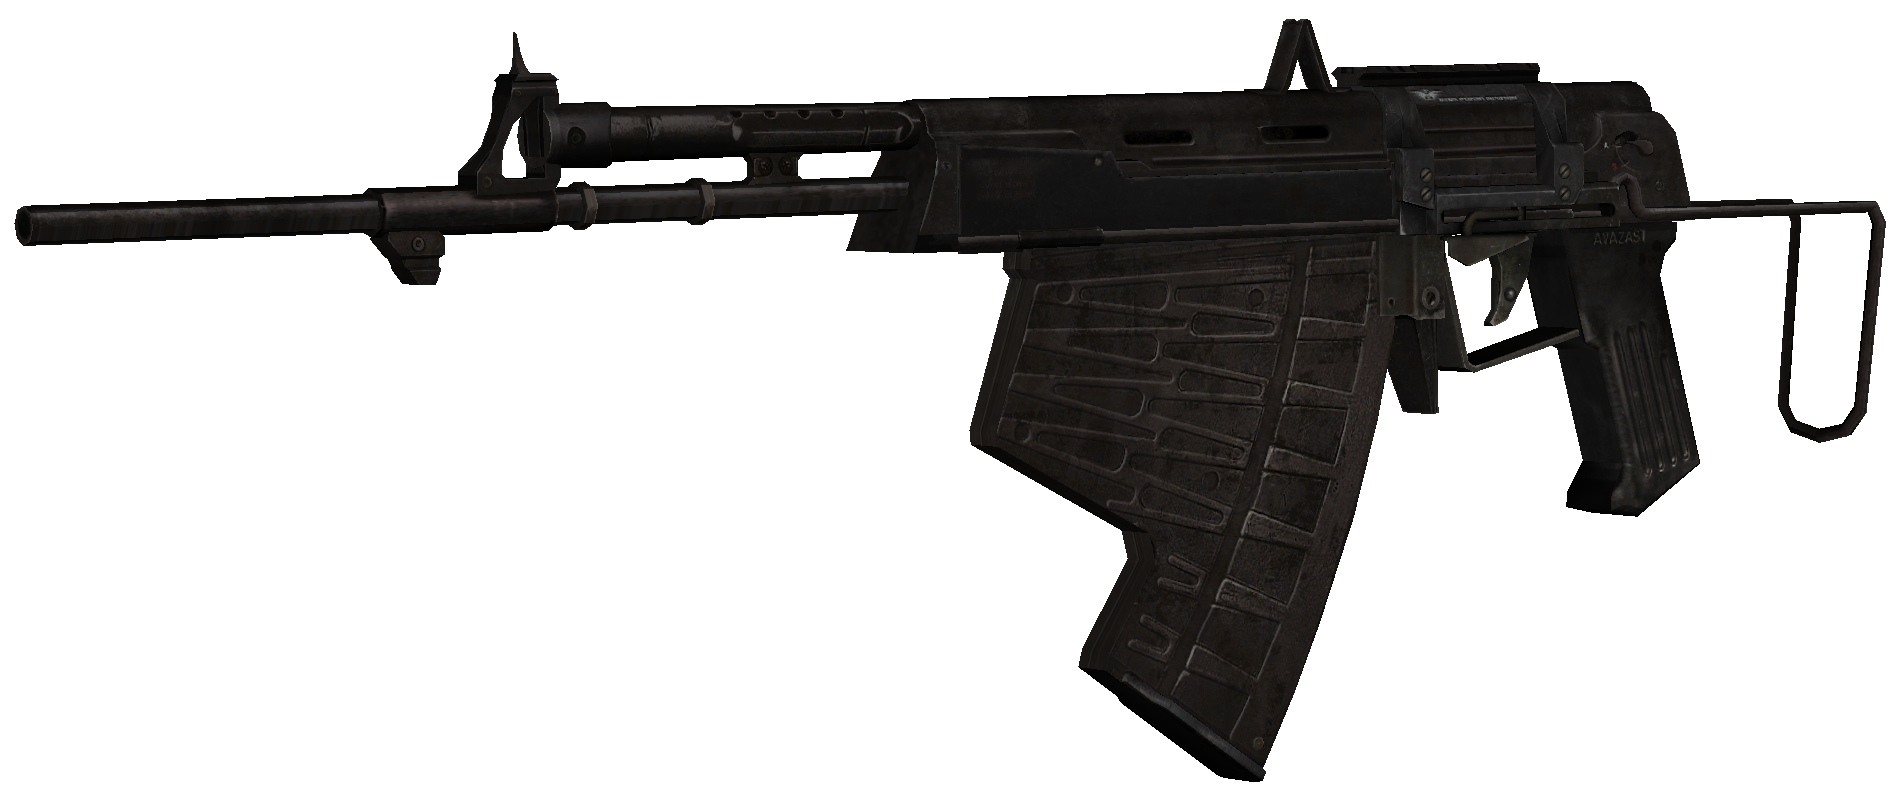 Vector mw2 crb. Aps underwater rifle call